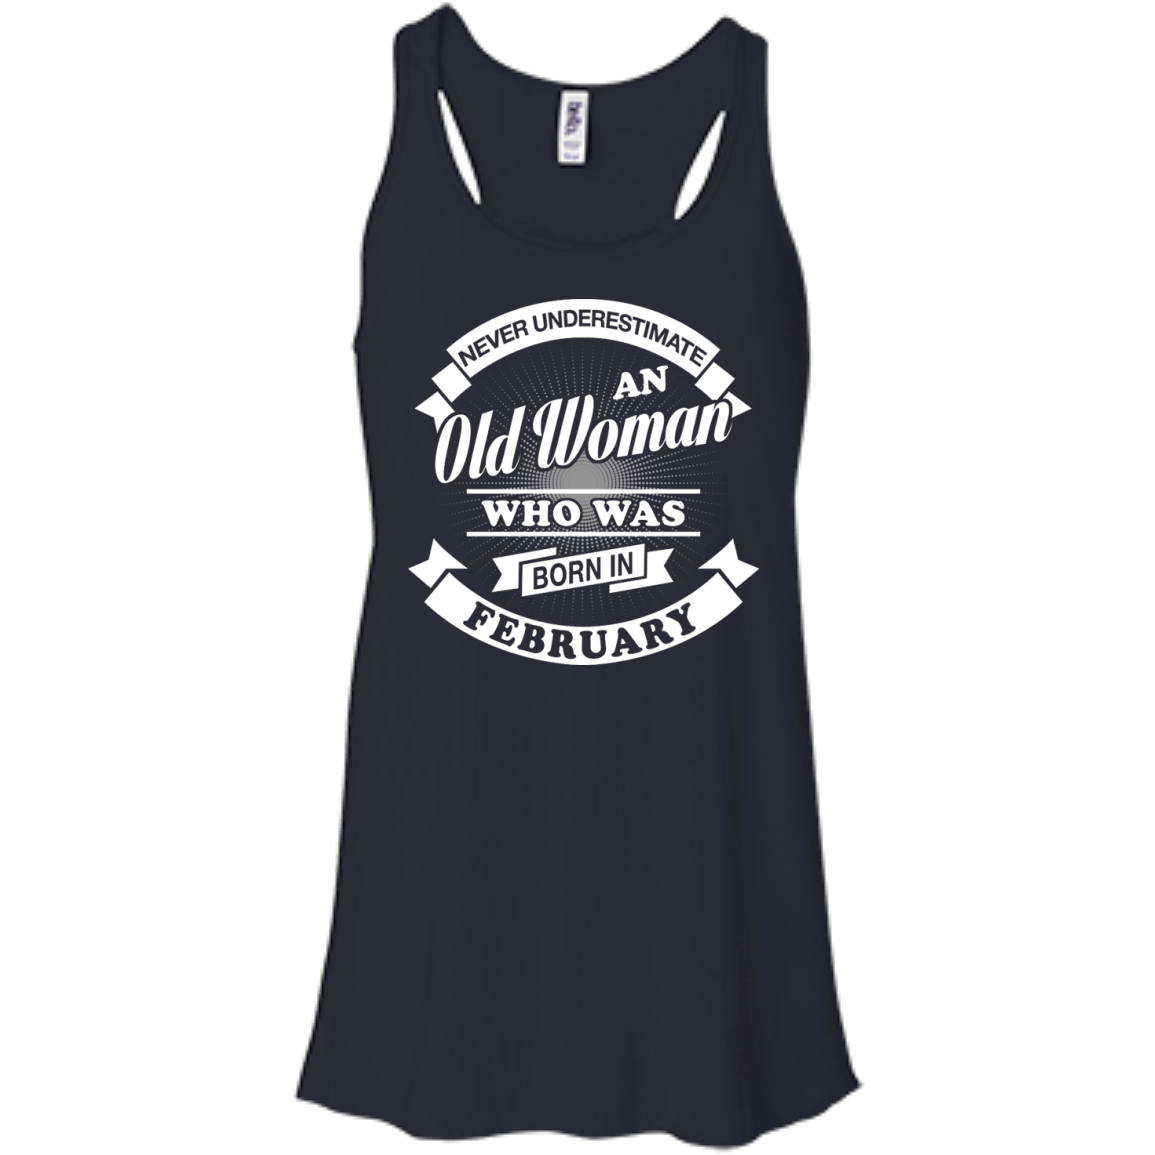 ea6f5b01a Never Underestimate An Old Woman Who Was Born In February Shirt ...